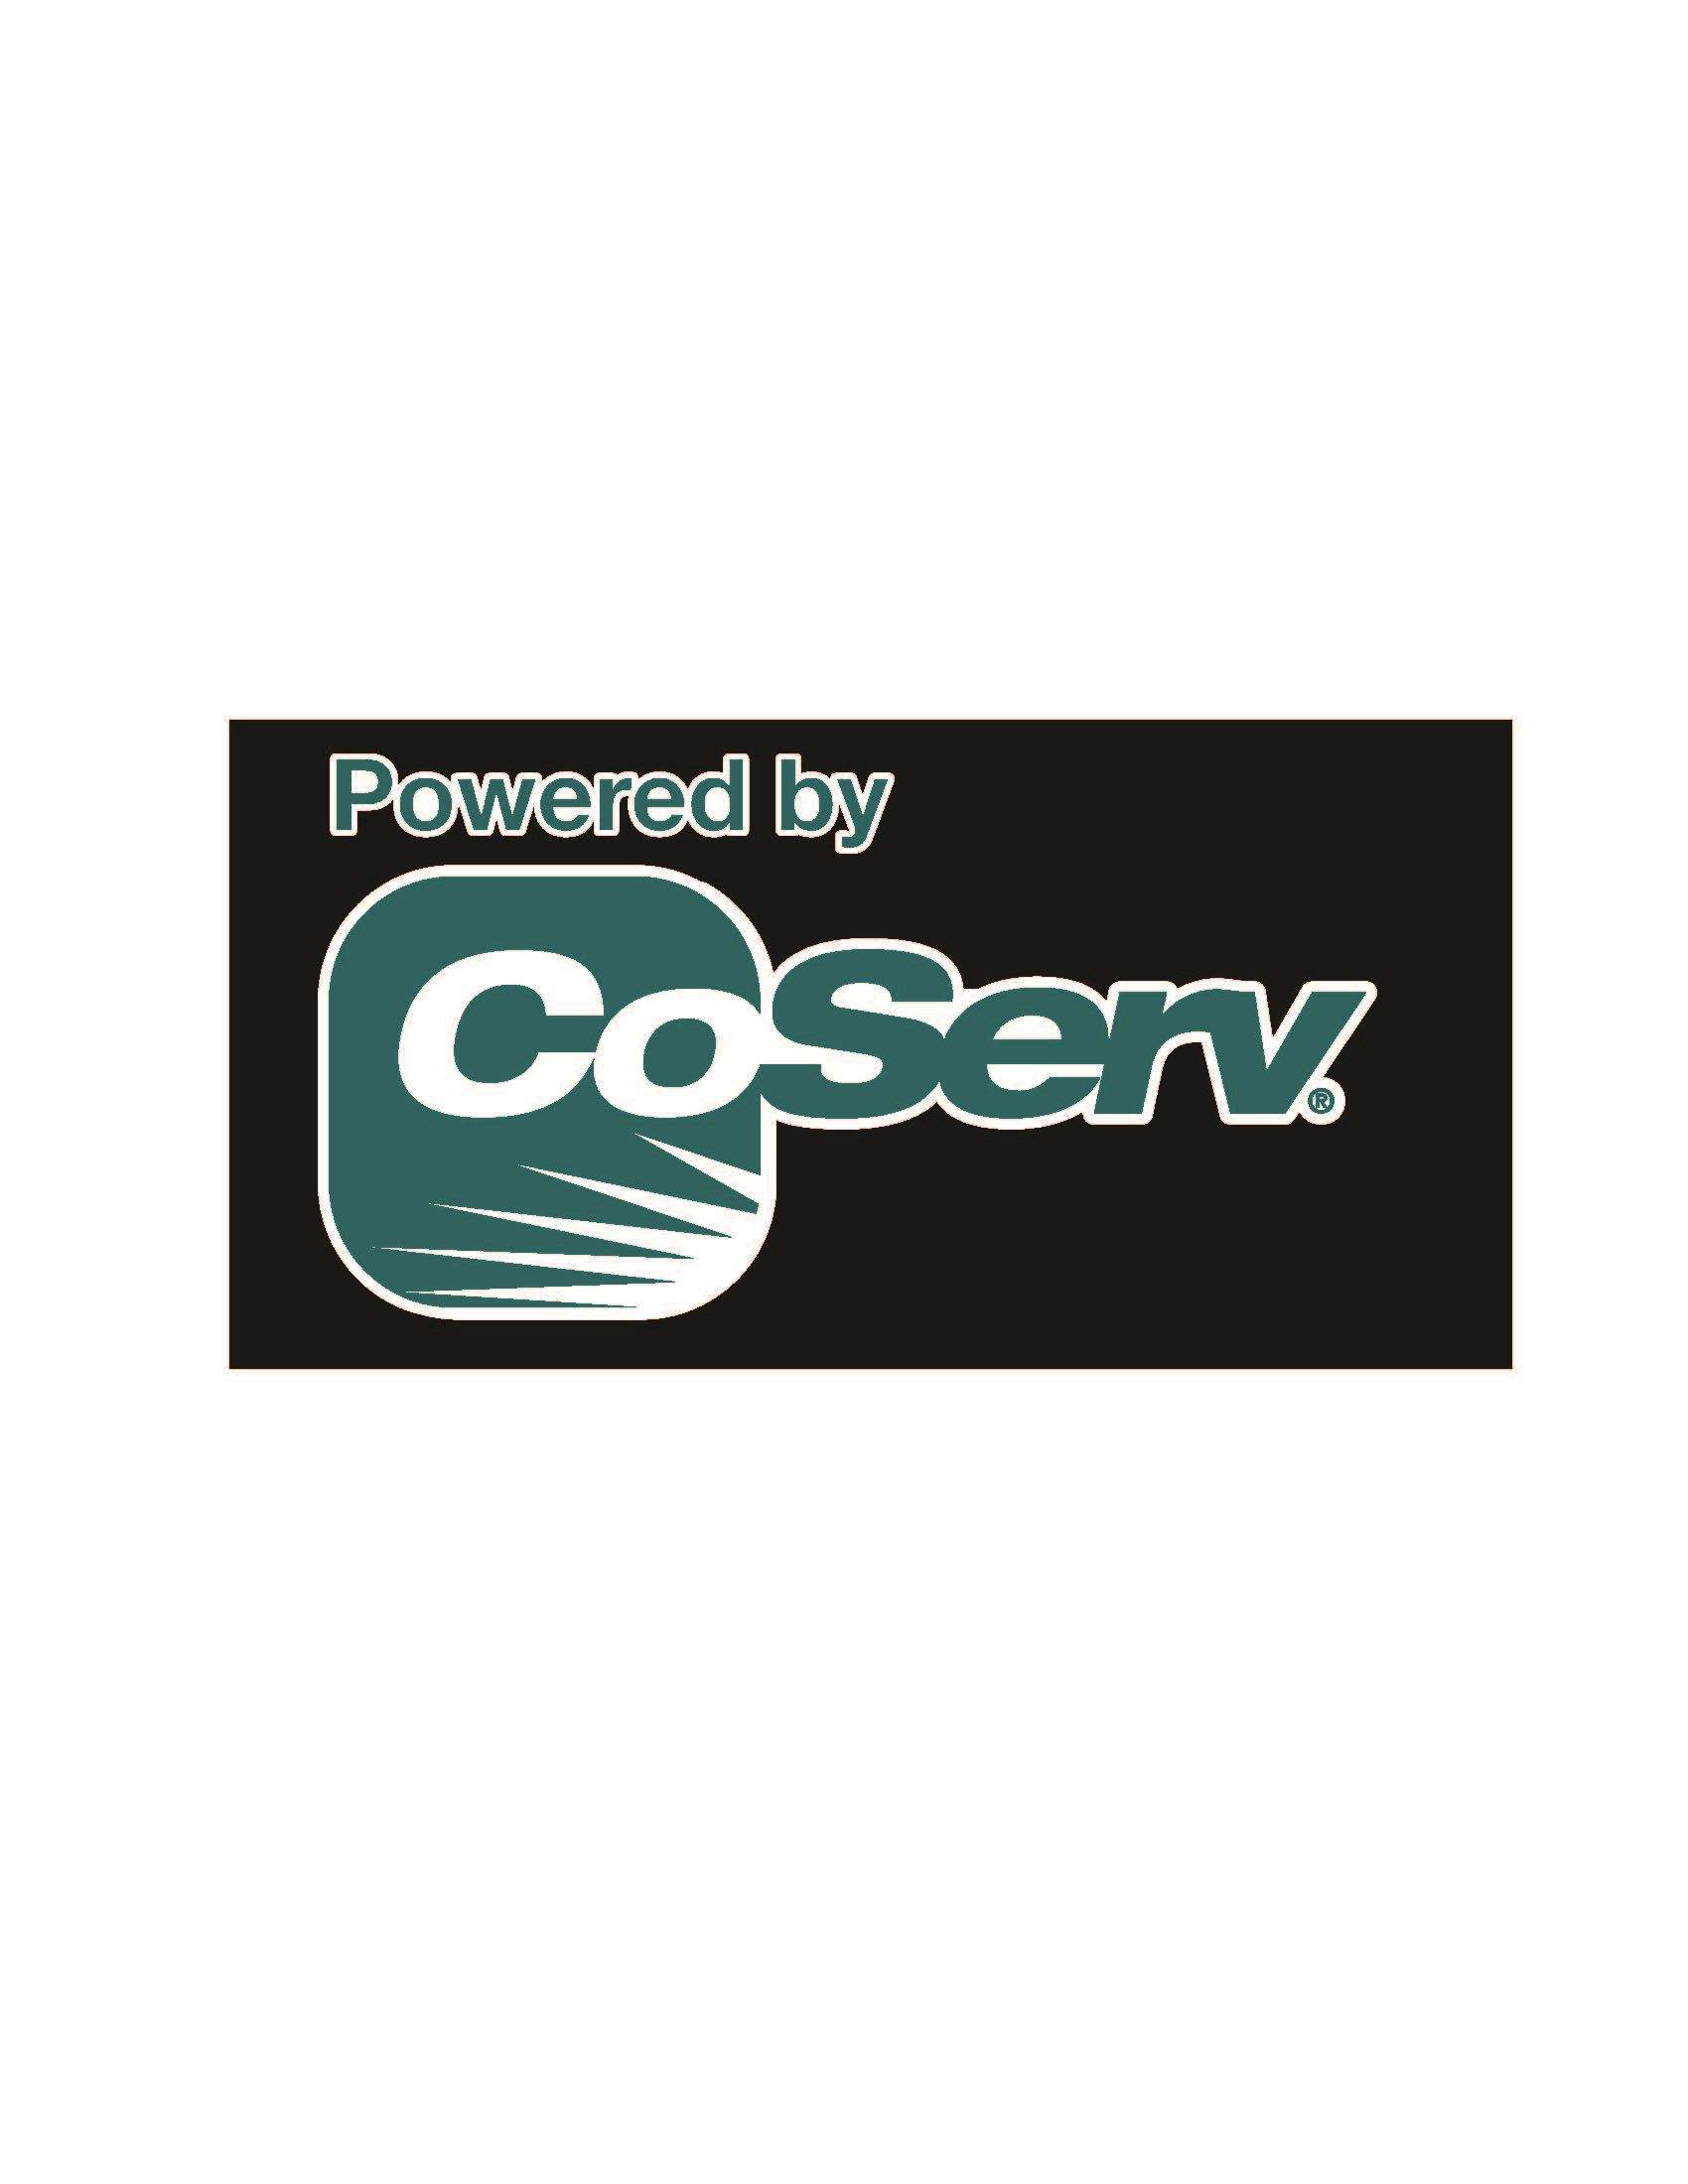 Powered by CoServ logo